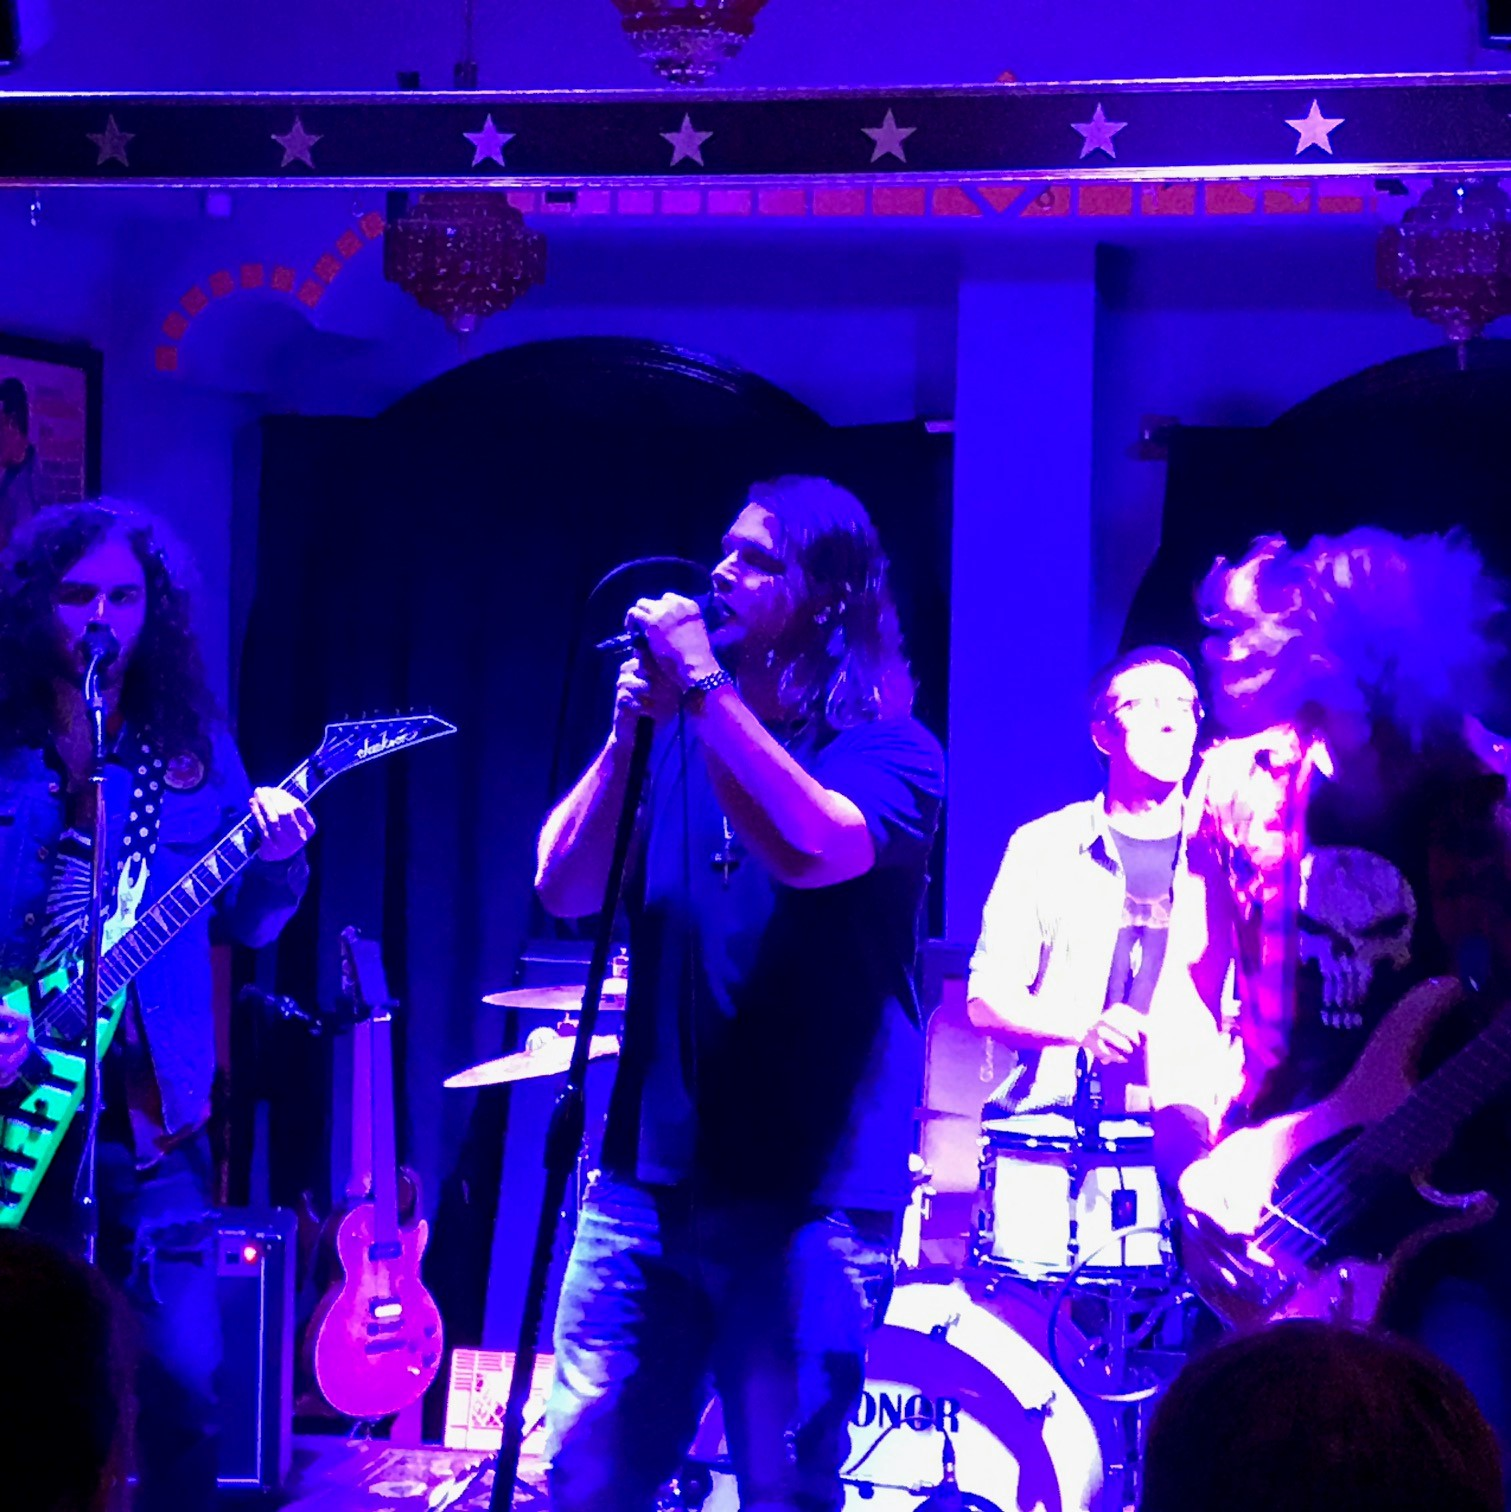 Saw another cool band Saturday night...